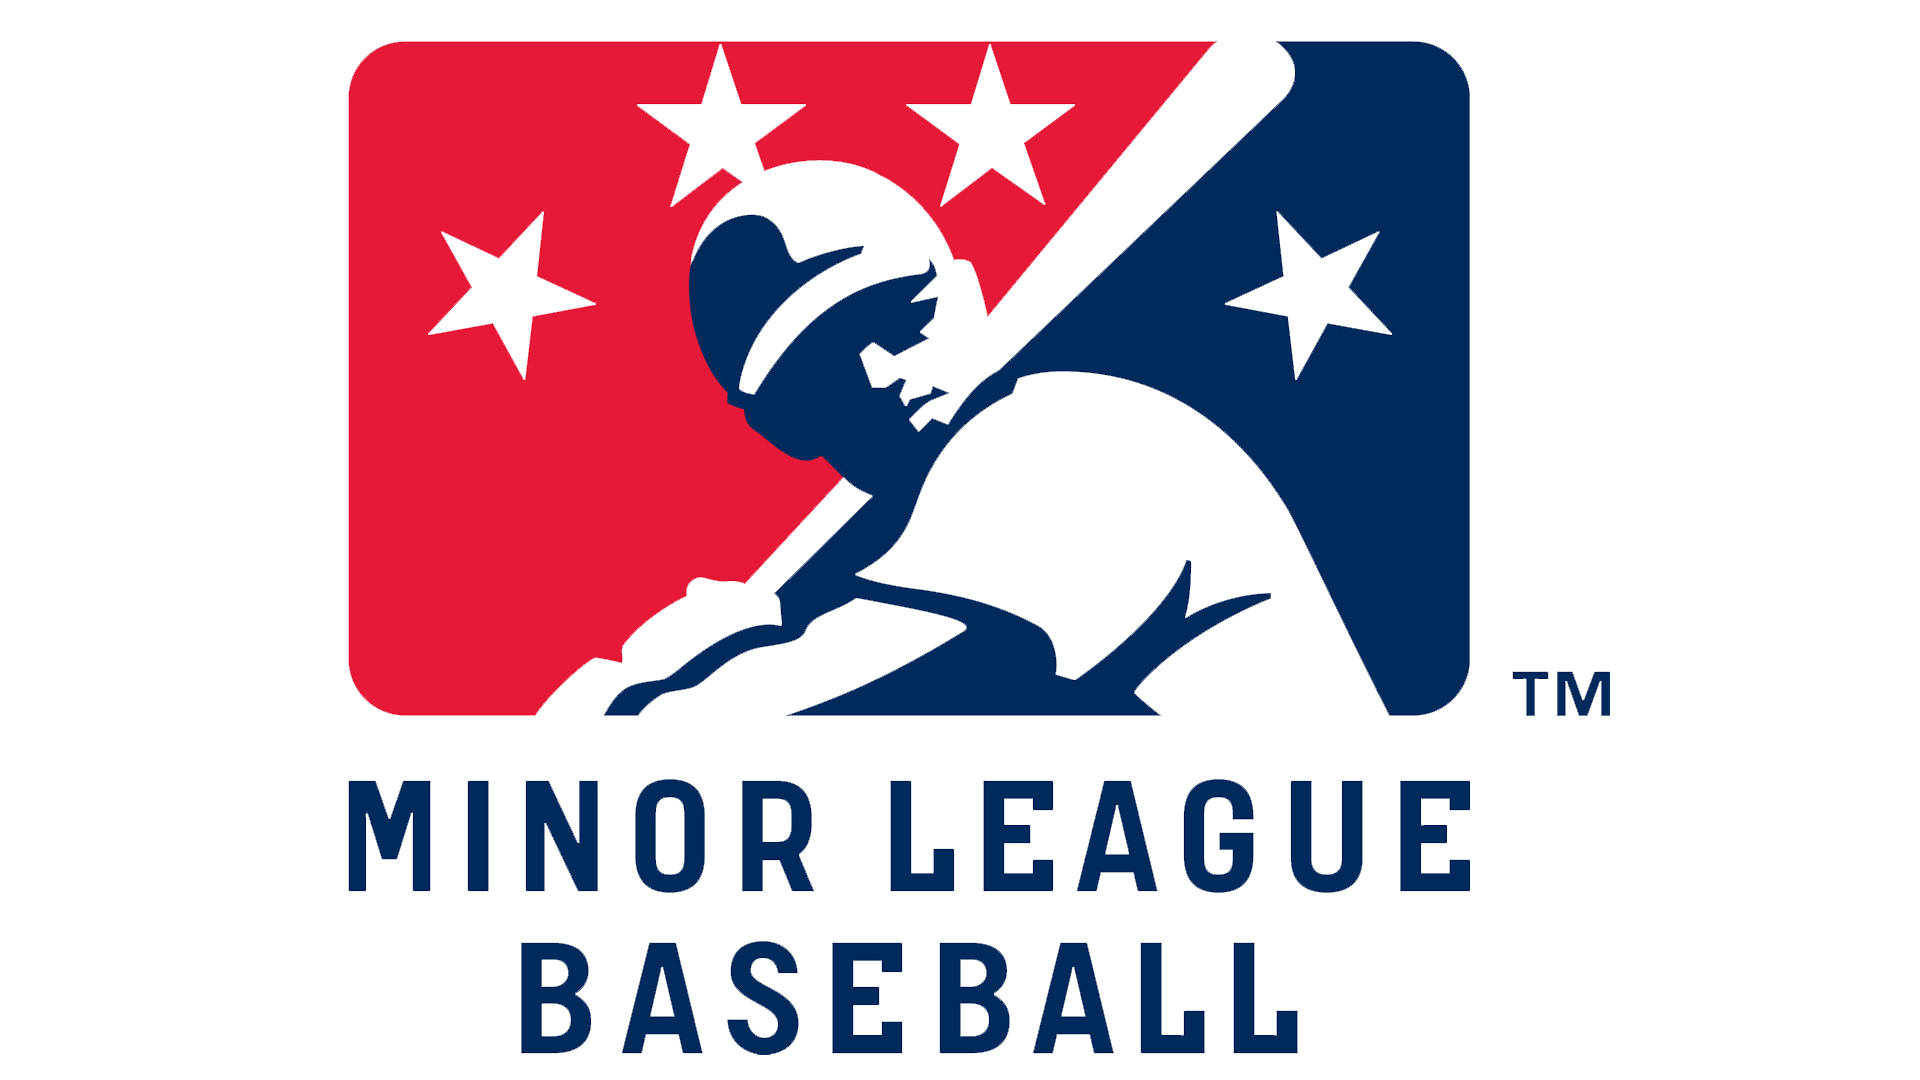 Meaning Minor League Baseball logo and symbol.